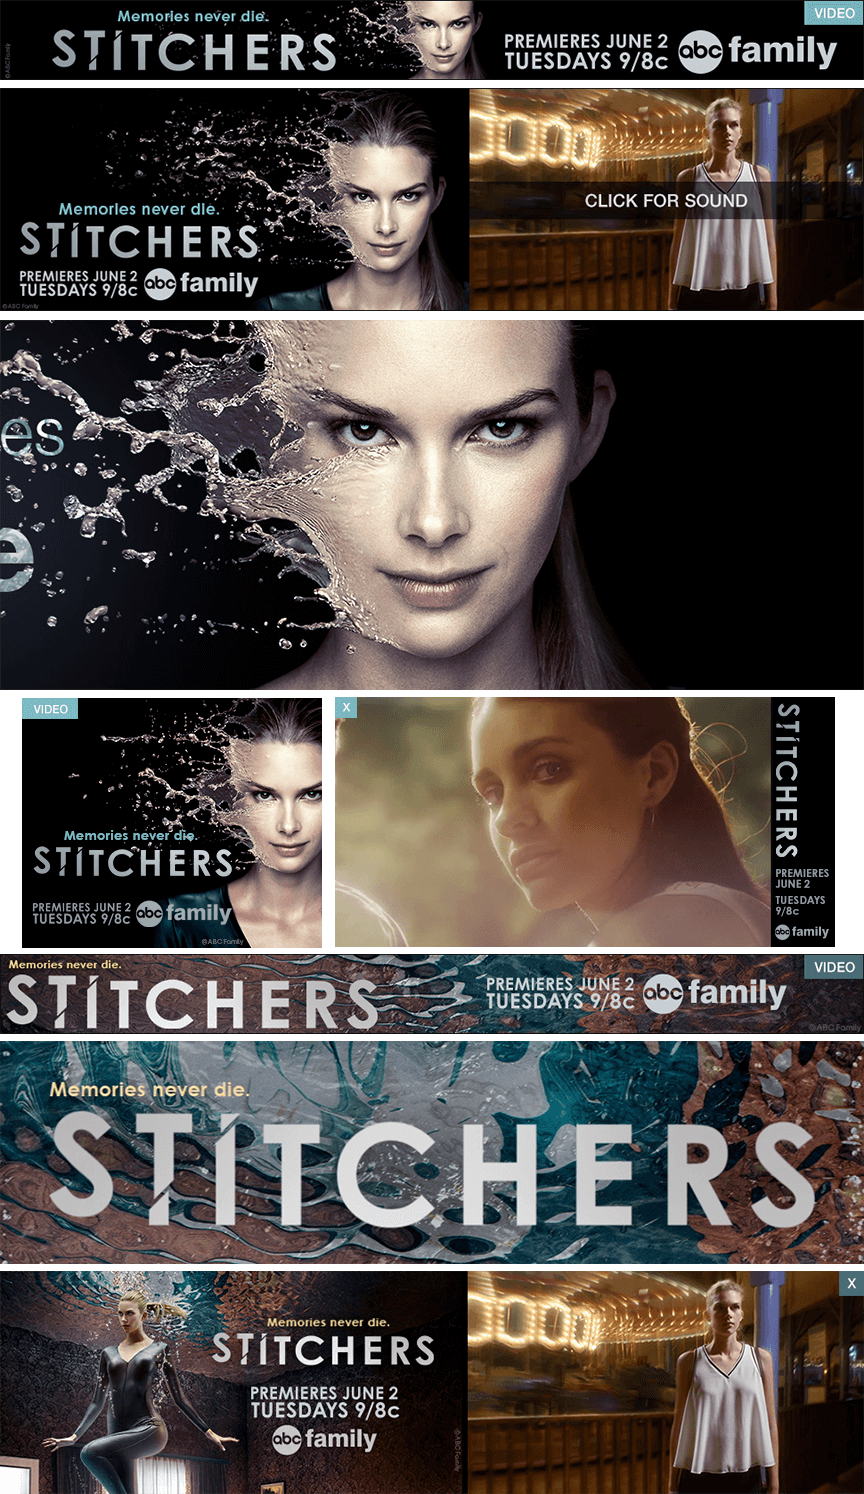 Stitchers - Firestride Media